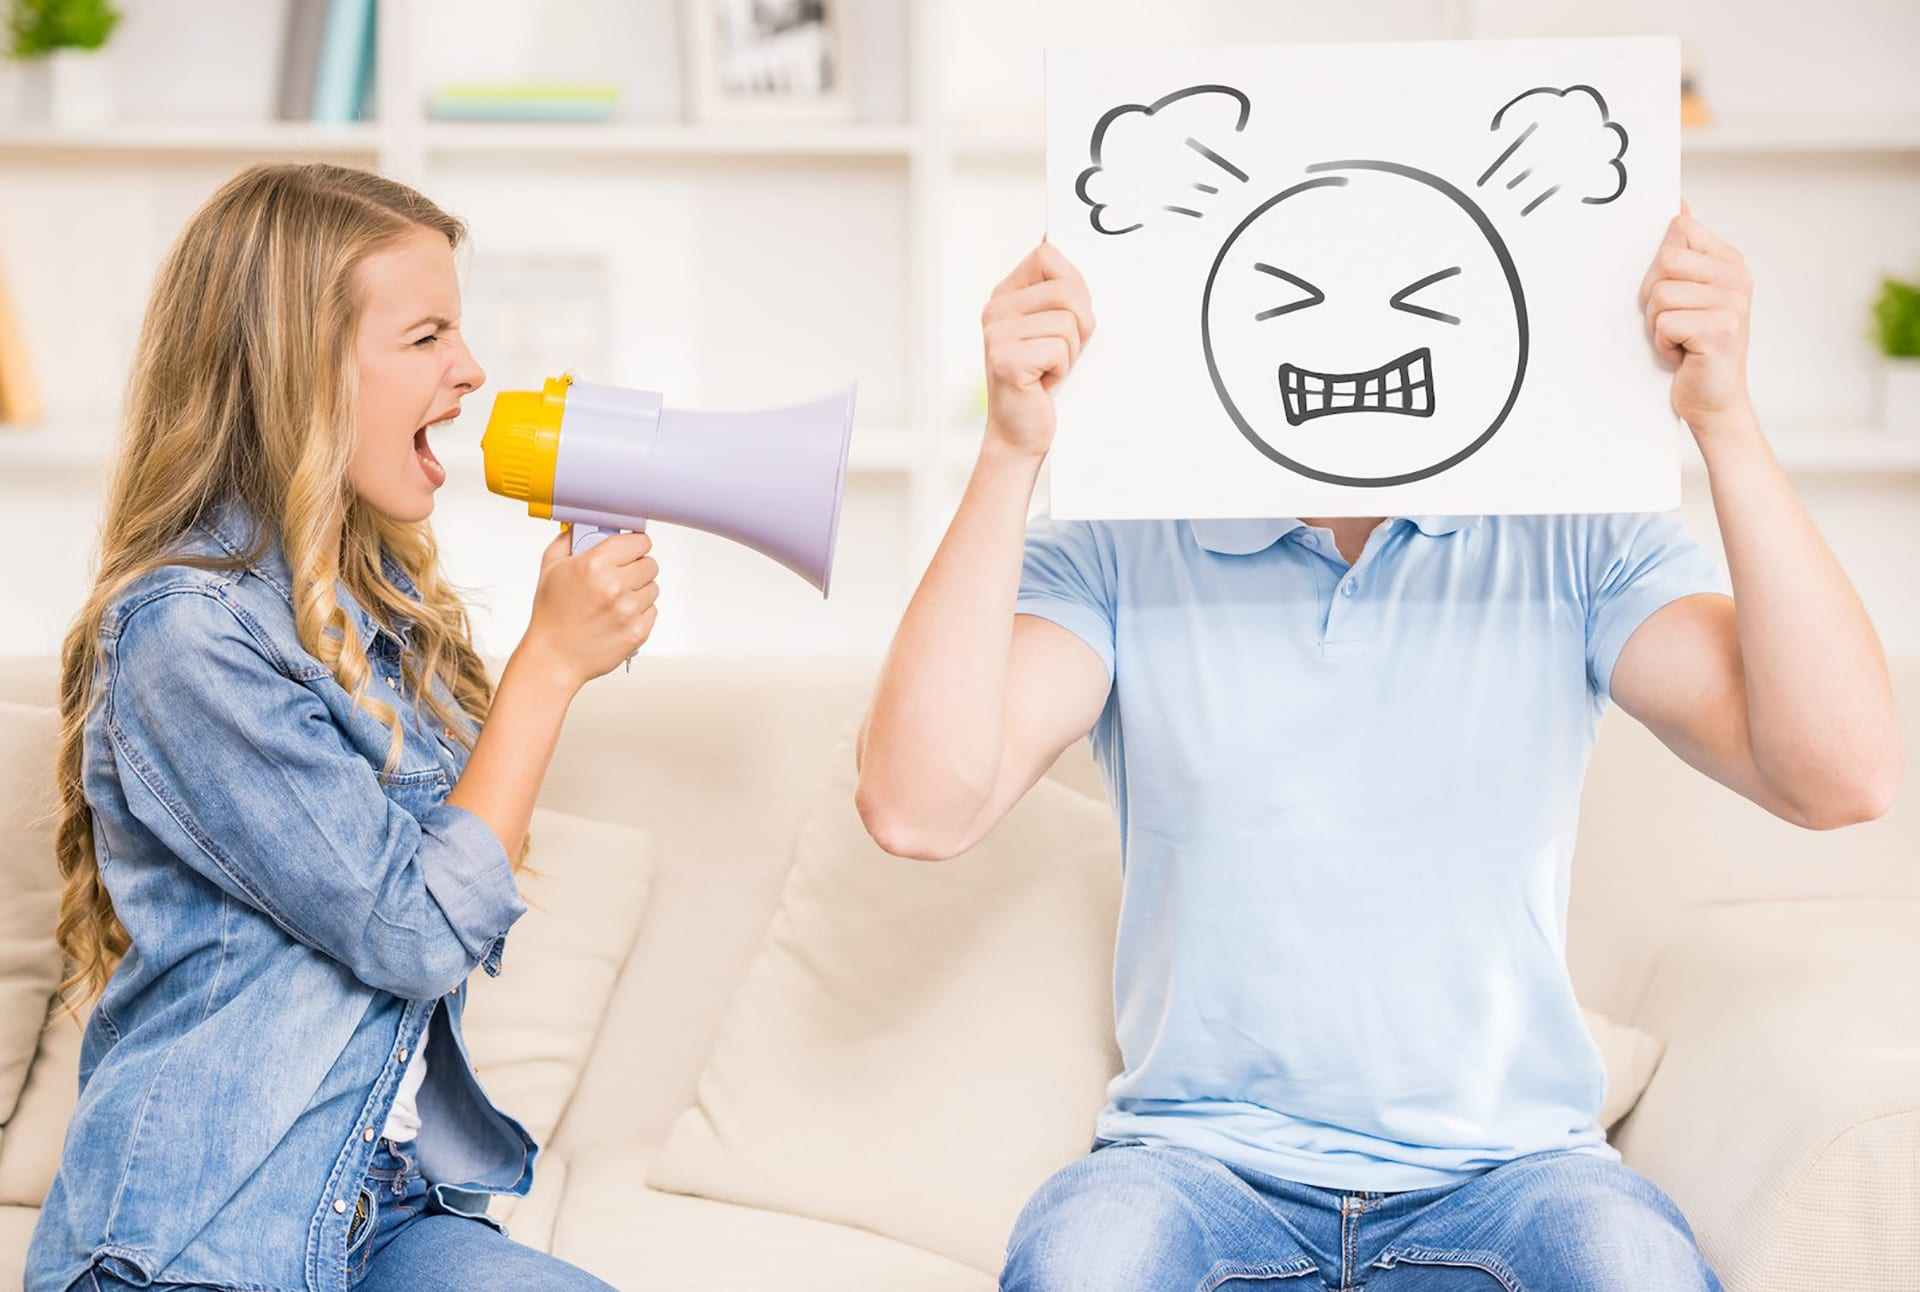 Anger Management Counselling Services - Anger Management Is Something That Can Change Your Life